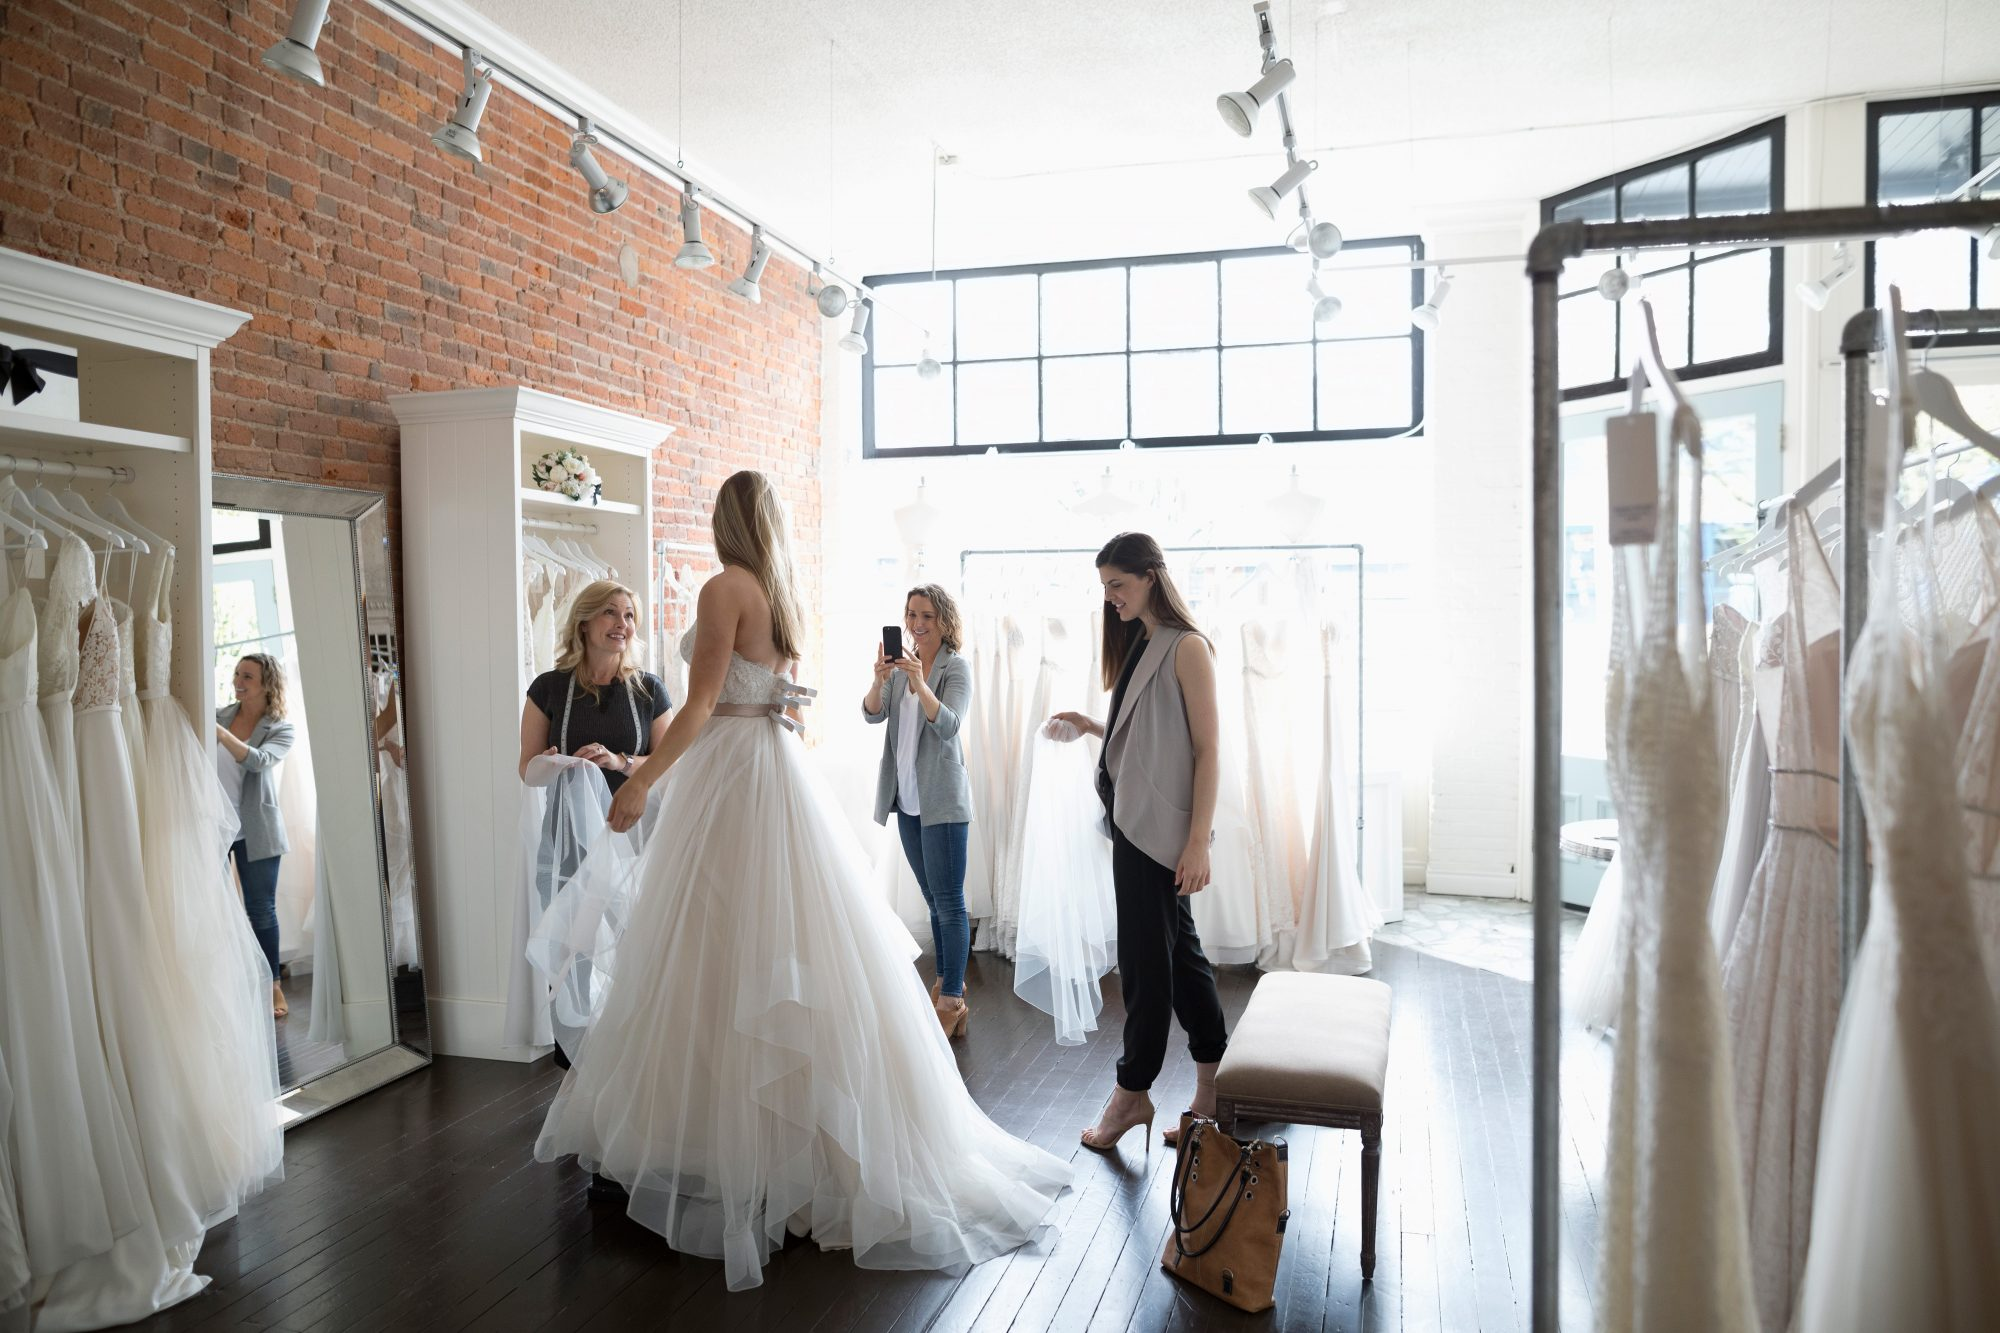 Woman Trying on Wedding Dress at Bridal Salon with Friends